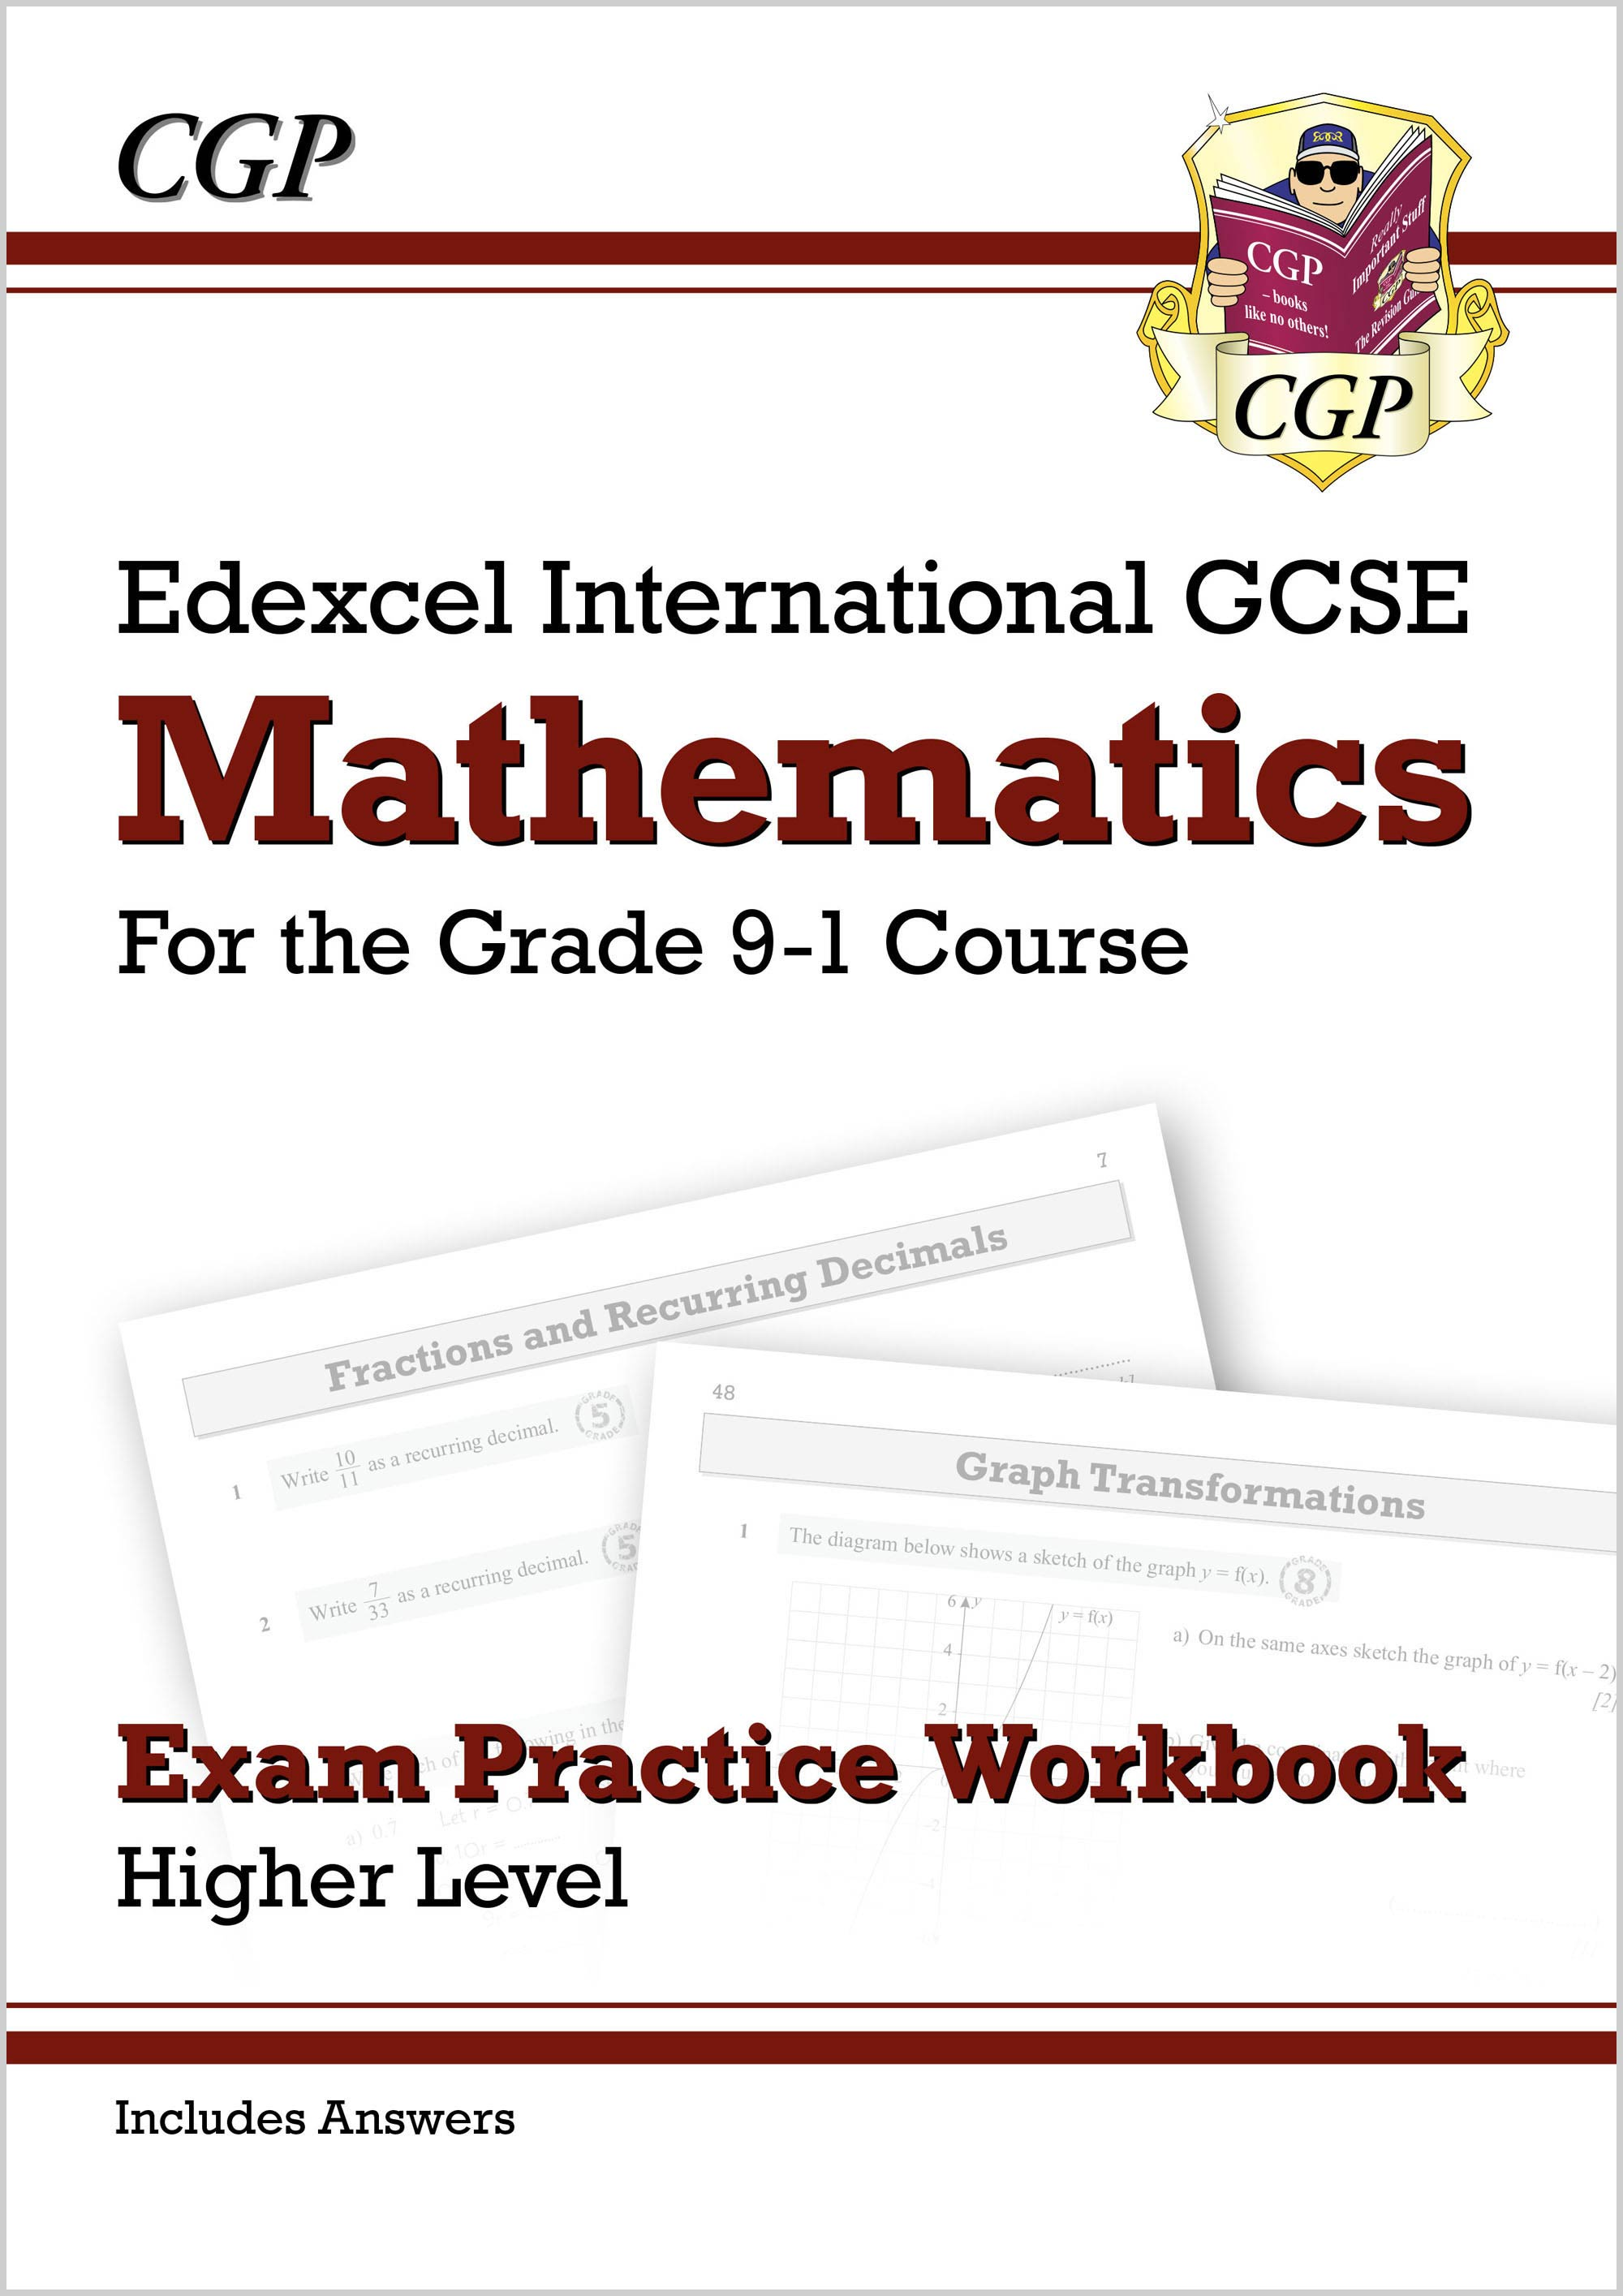 MEQI42D - Edexcel International GCSE Maths Exam Practice Workbook: Higher - Grade 9-1 (with Answers)